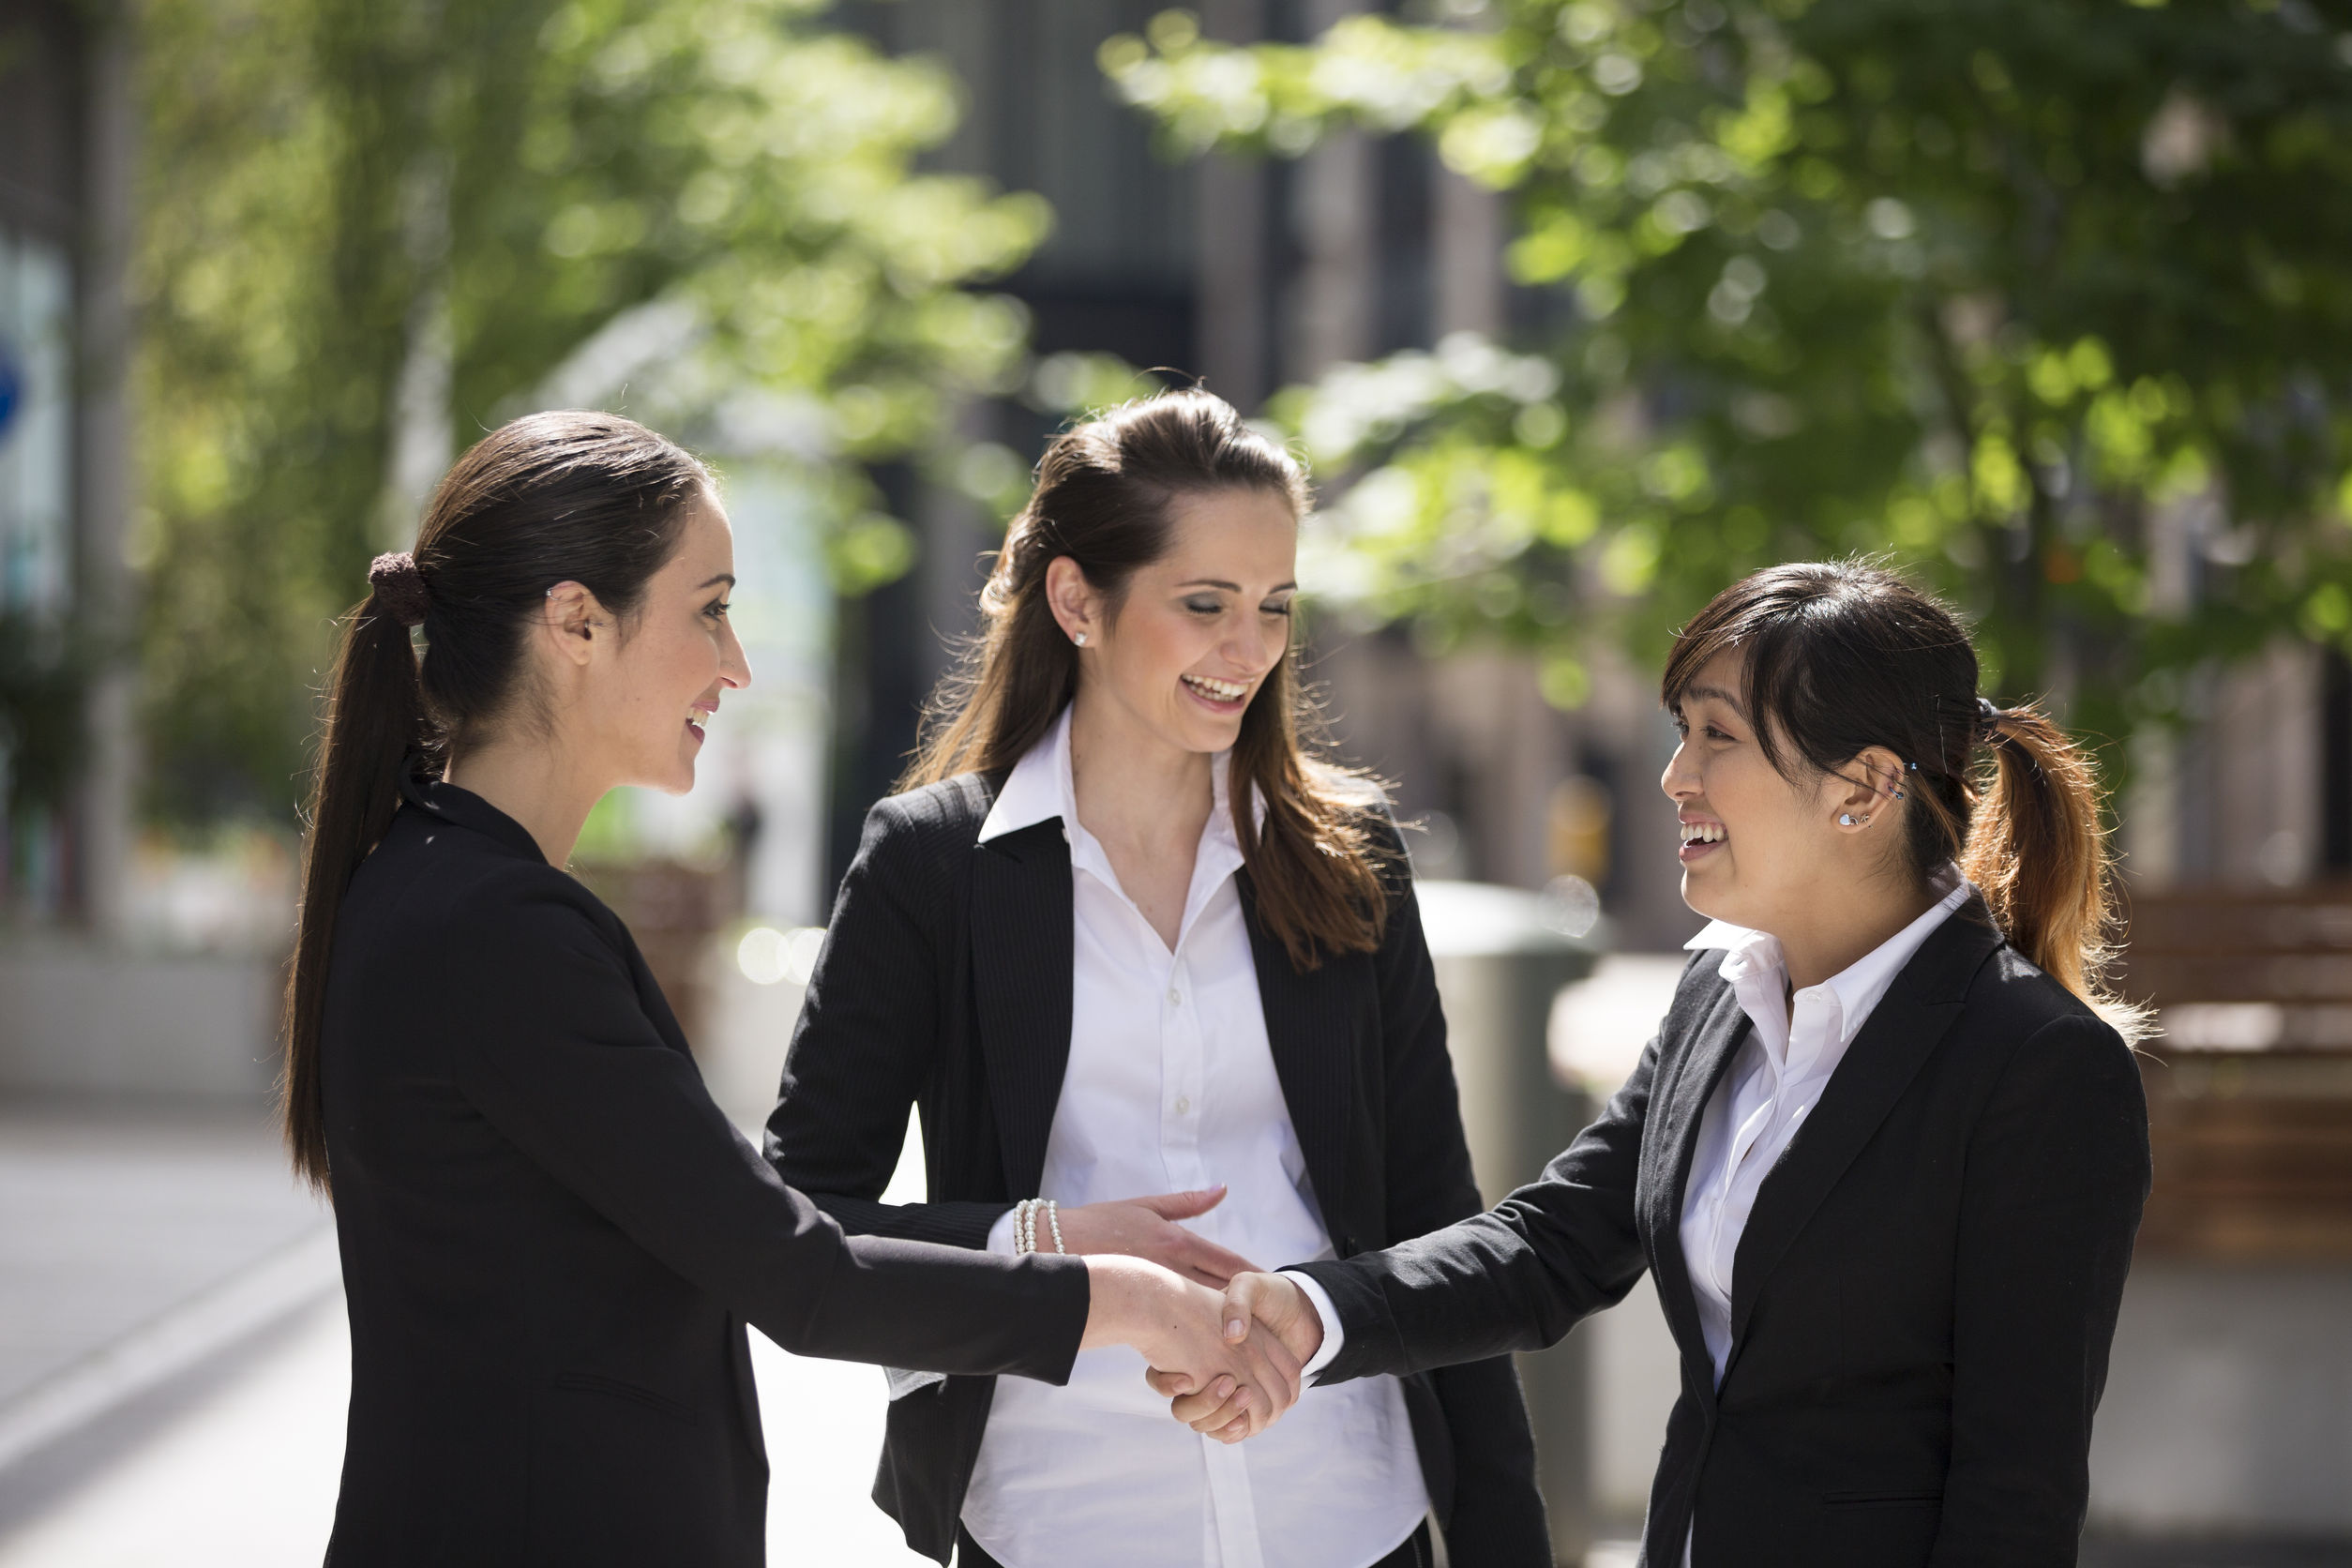 caucasian business women shaking hands. business concept